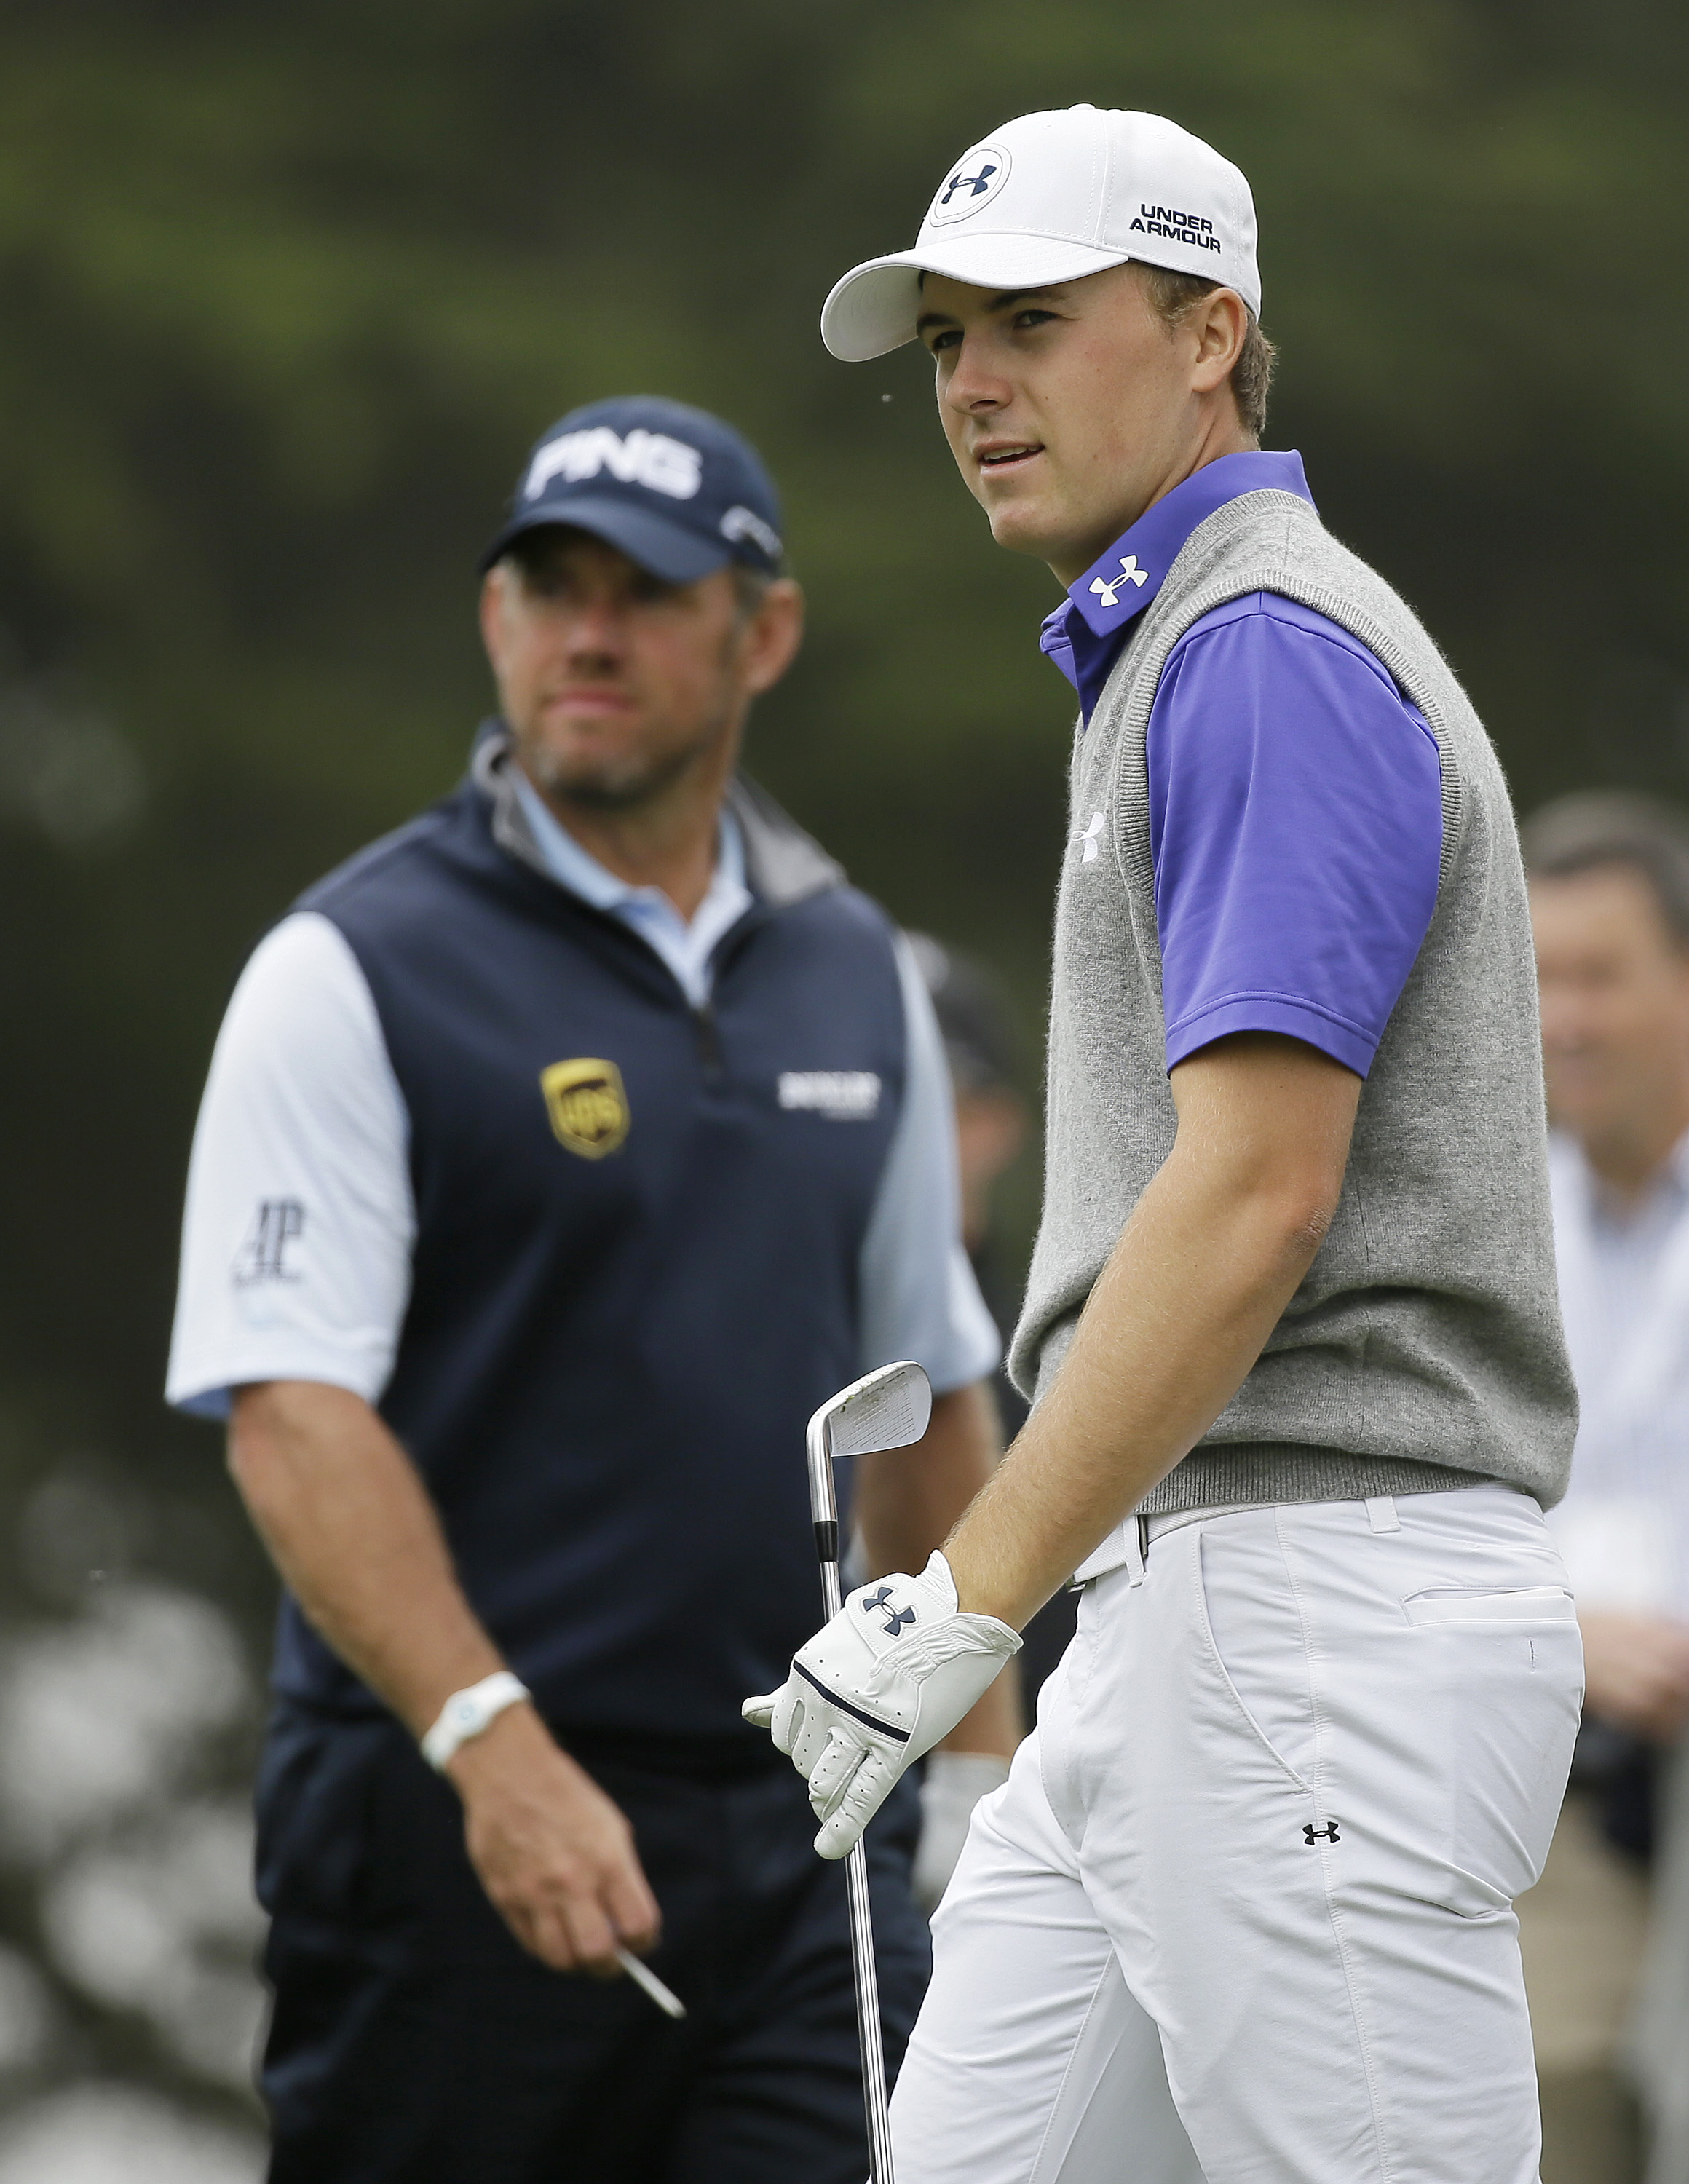 Jordan Spieth, right, follows his shot from the second tee of TPC Harding Park during round-robin play against Lee Westwood, left, of England, at the Match Play Championship golf tournament Friday, May 1, 2015, in San Francisco. (AP Photo/Eric Risberg)